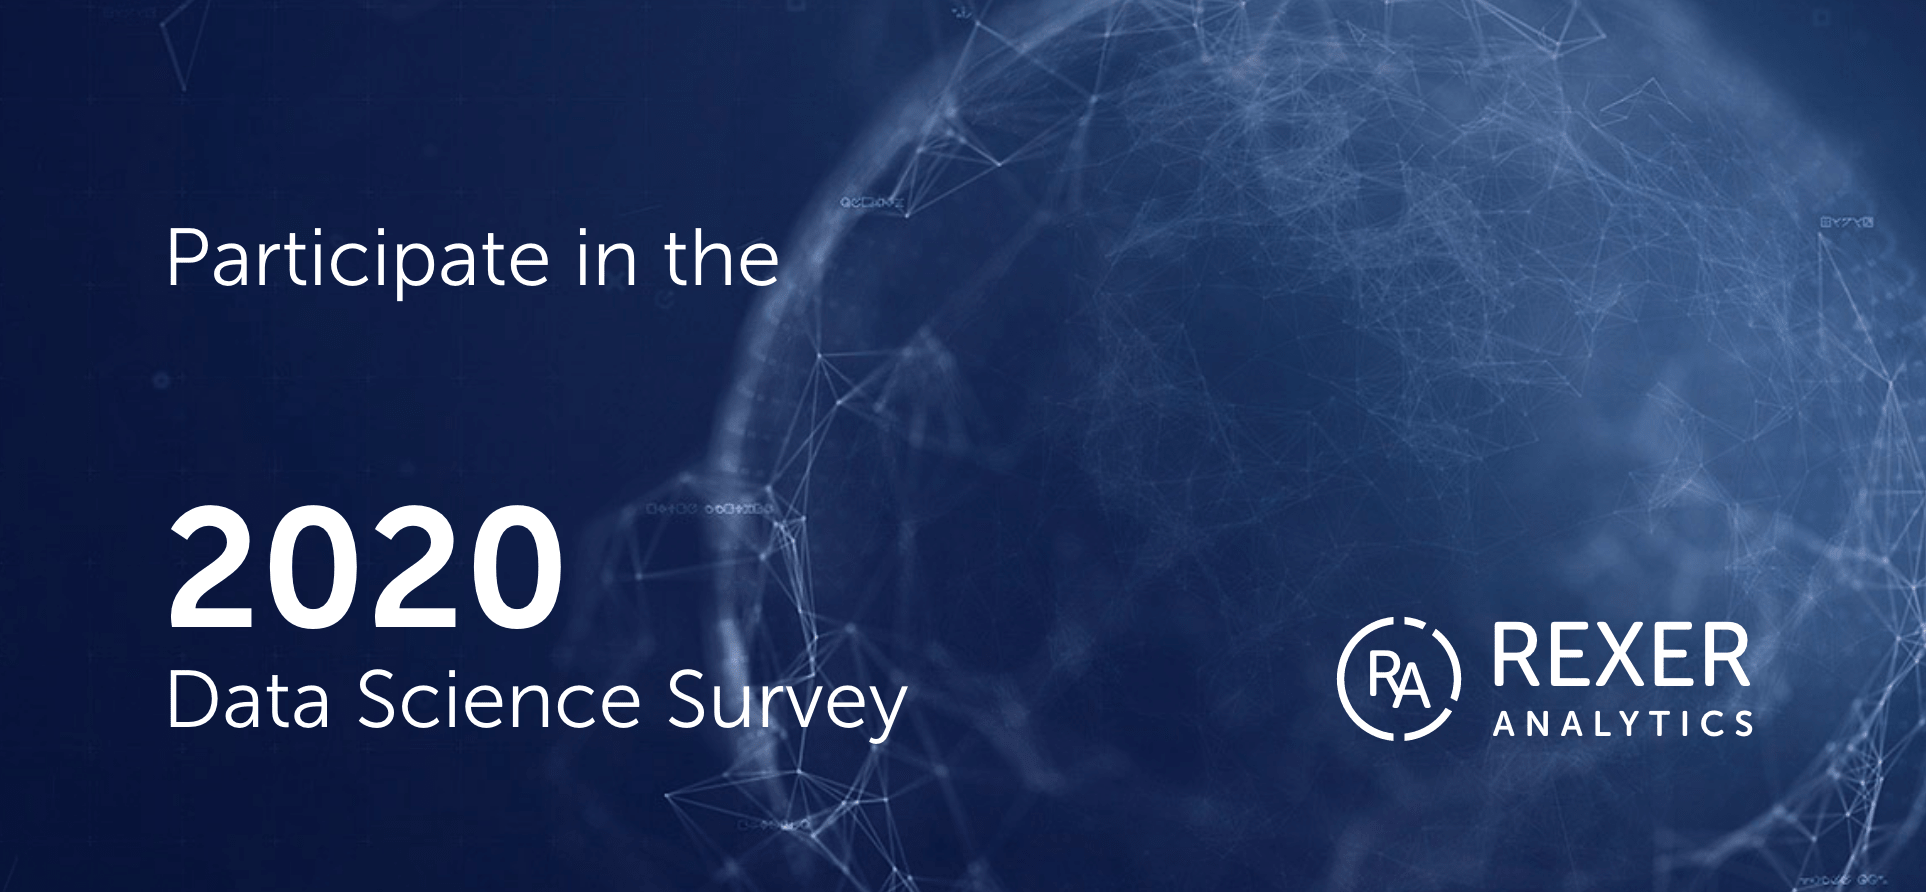 2020 data science survey